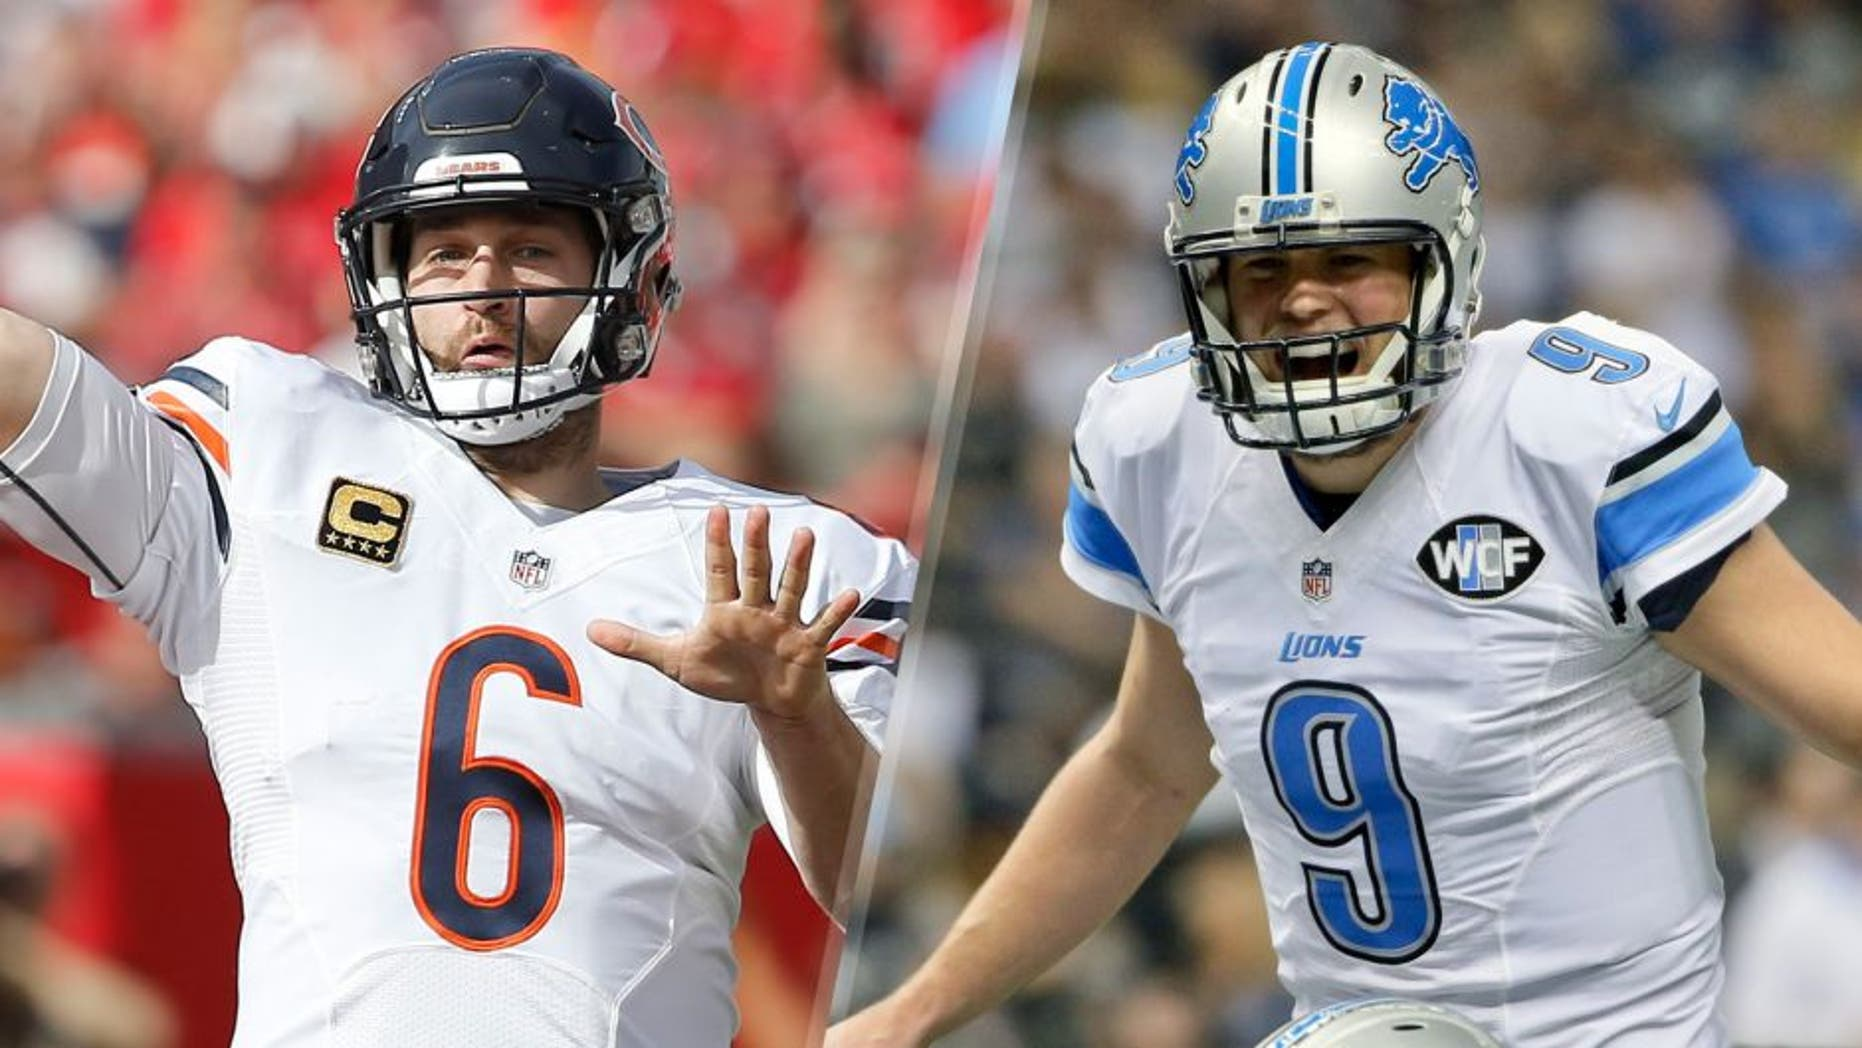 Dec 27, 2015; Tampa, FL, USA; Chicago Bears quarterback Jay Cutler (6) throws a pass during the first quarter of a football game against the Tampa Bay Buccaneers at Raymond James Stadium. Mandatory Credit: Reinhold Matay-USA TODAY Sports Dec 21, 2015; New Orleans, LA, USA; Detroit Lions quarterback Matthew Stafford (9) against the New Orleans Saints during the first quarter a game at the Mercedes-Benz Superdome. Mandatory Credit: Derick E. Hingle-USA TODAY Sports